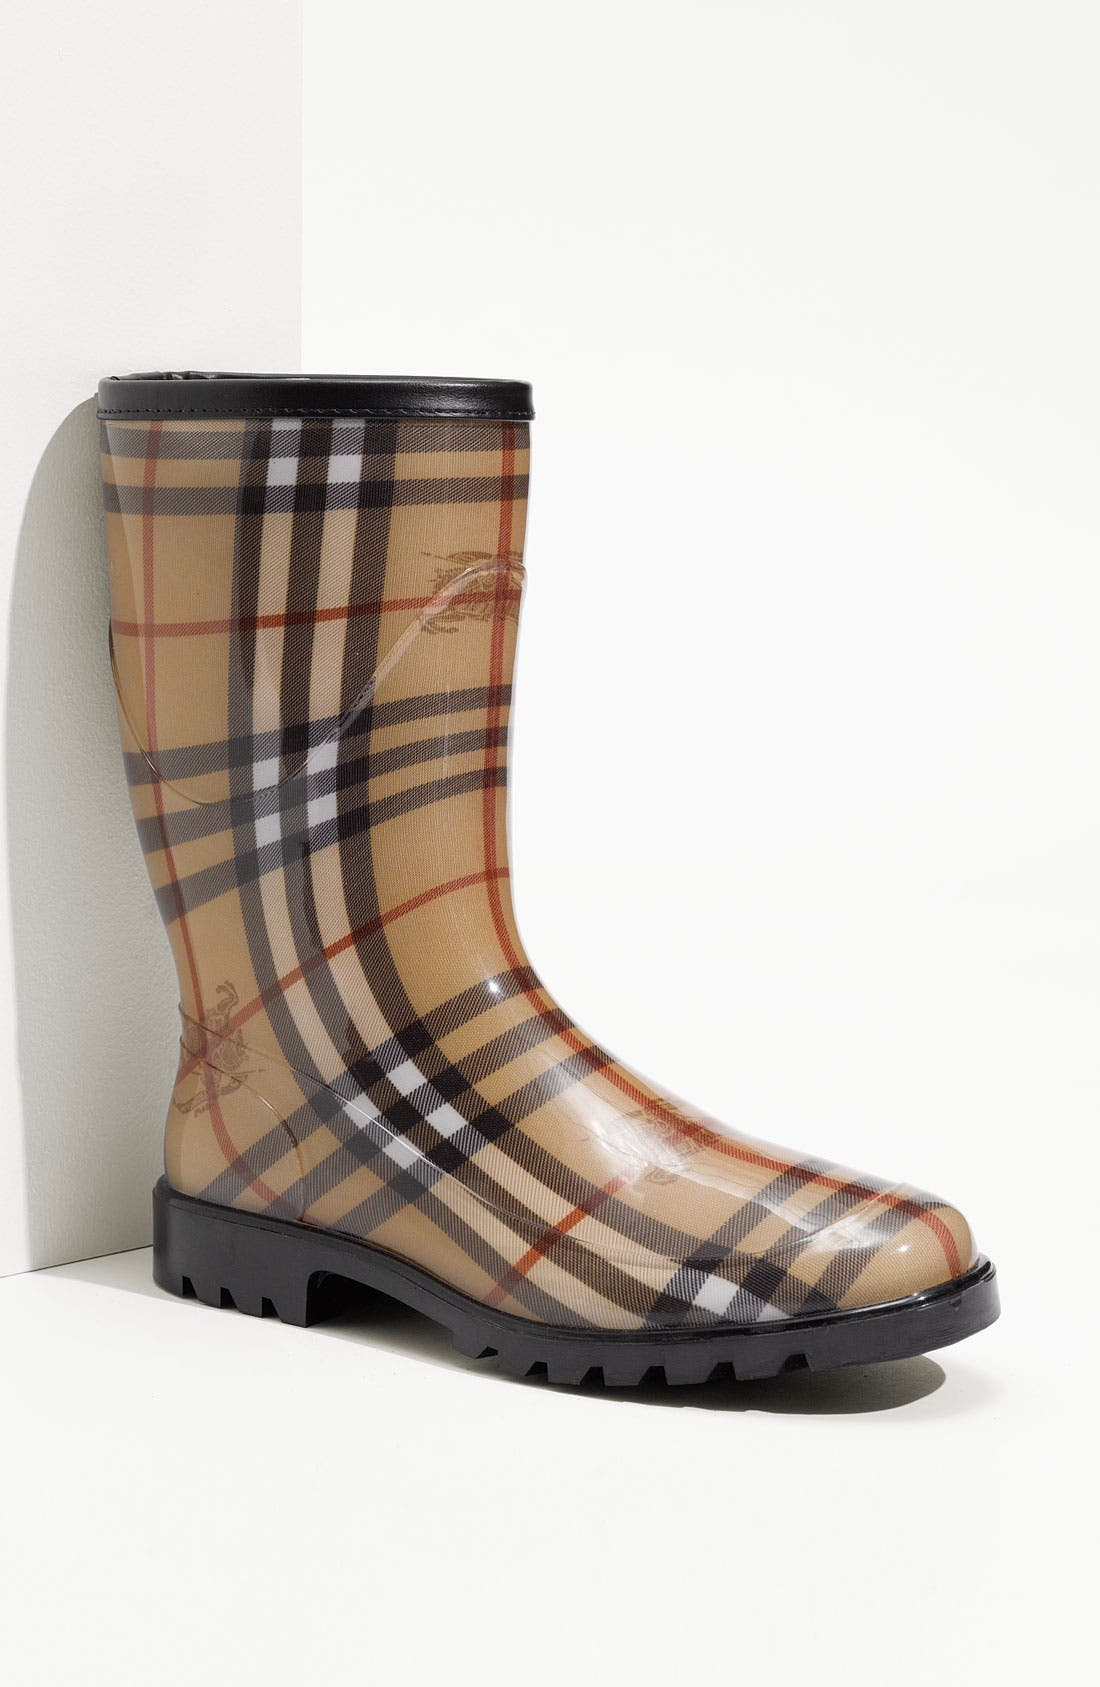 Alternate Image 1 Selected - Burberry Check Print Rain Boot